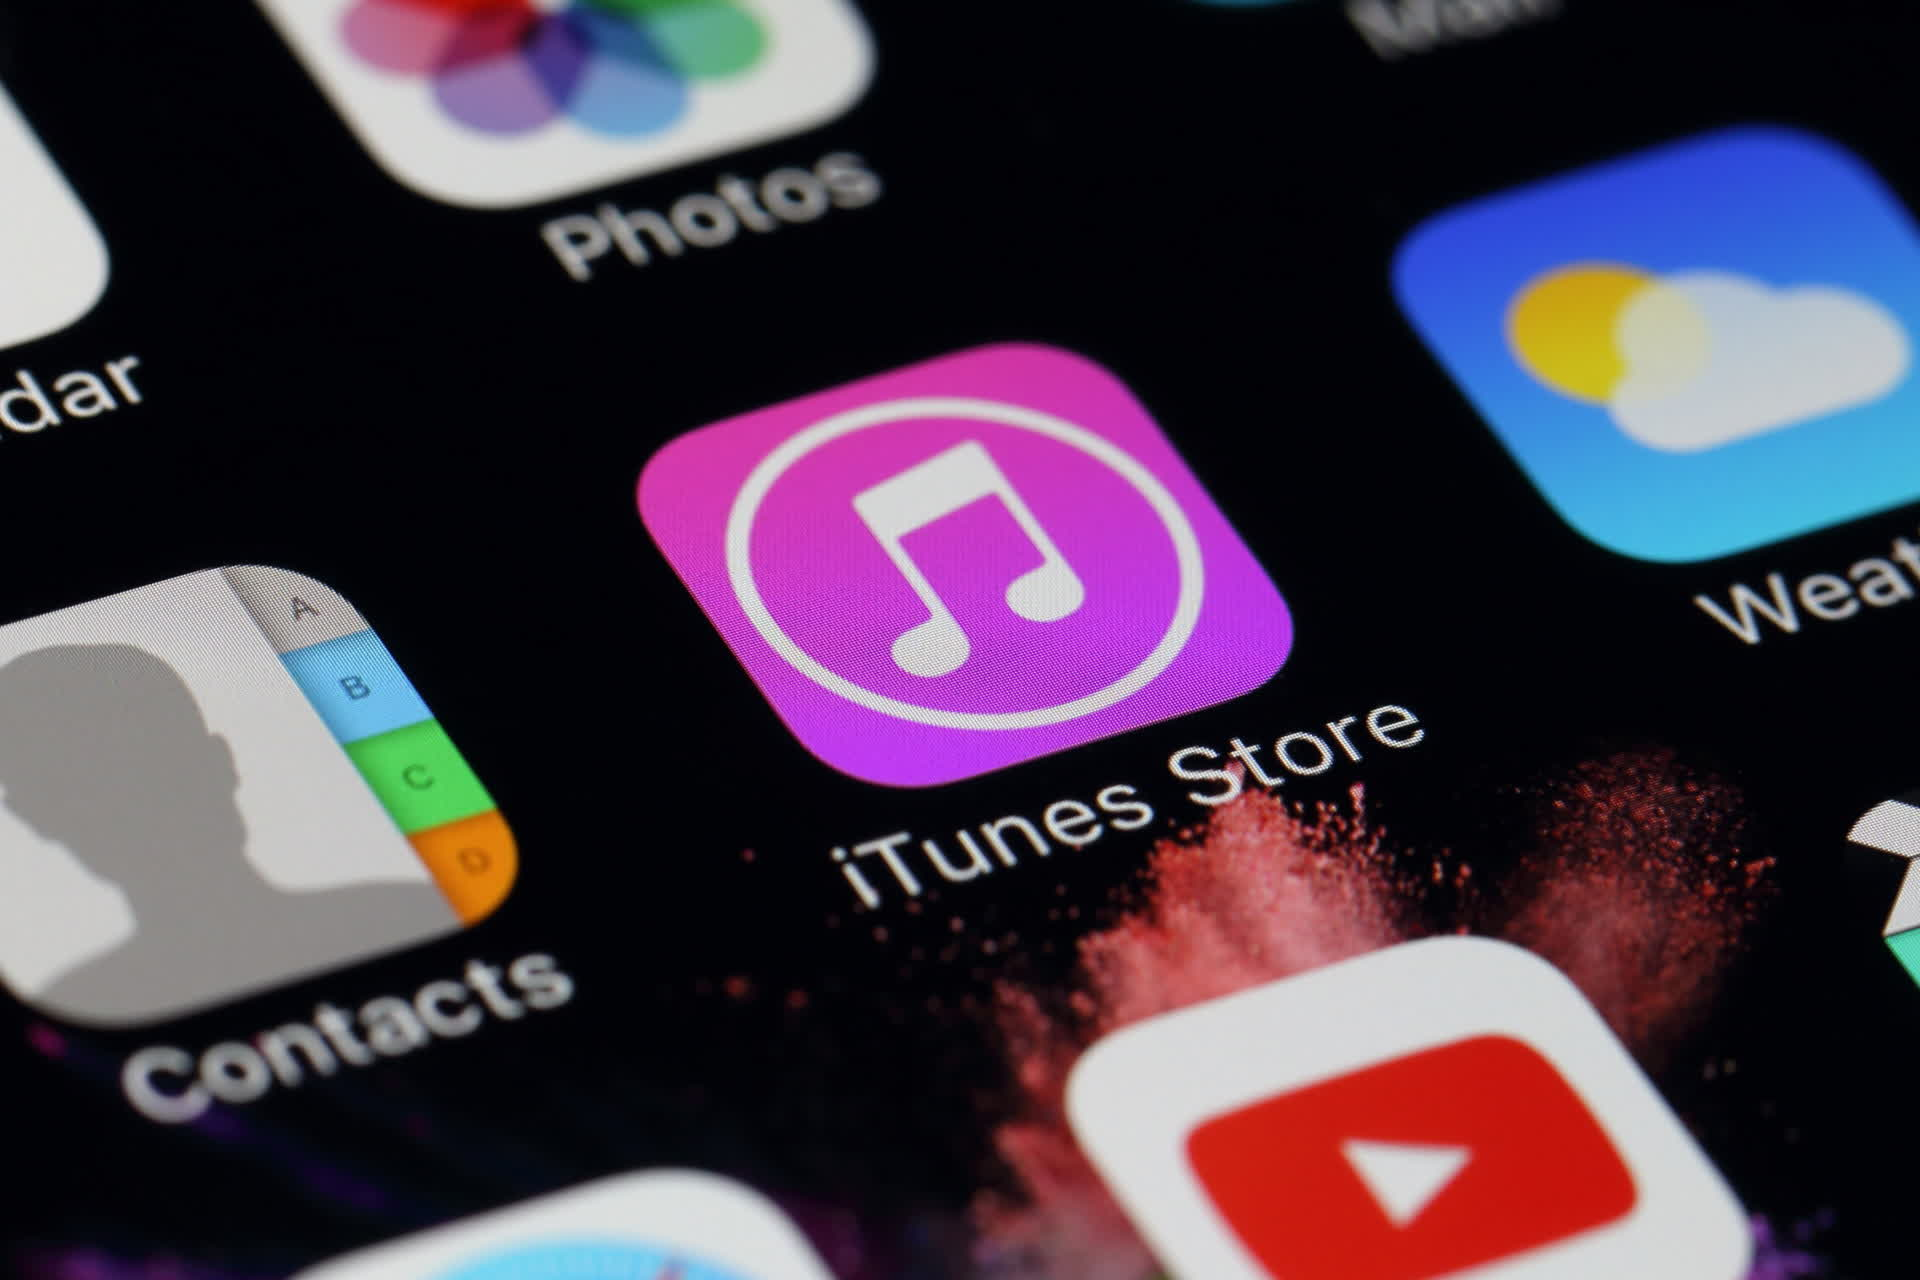 Apple is being sued for suggesting customers can 'Buy' TV shows and movies